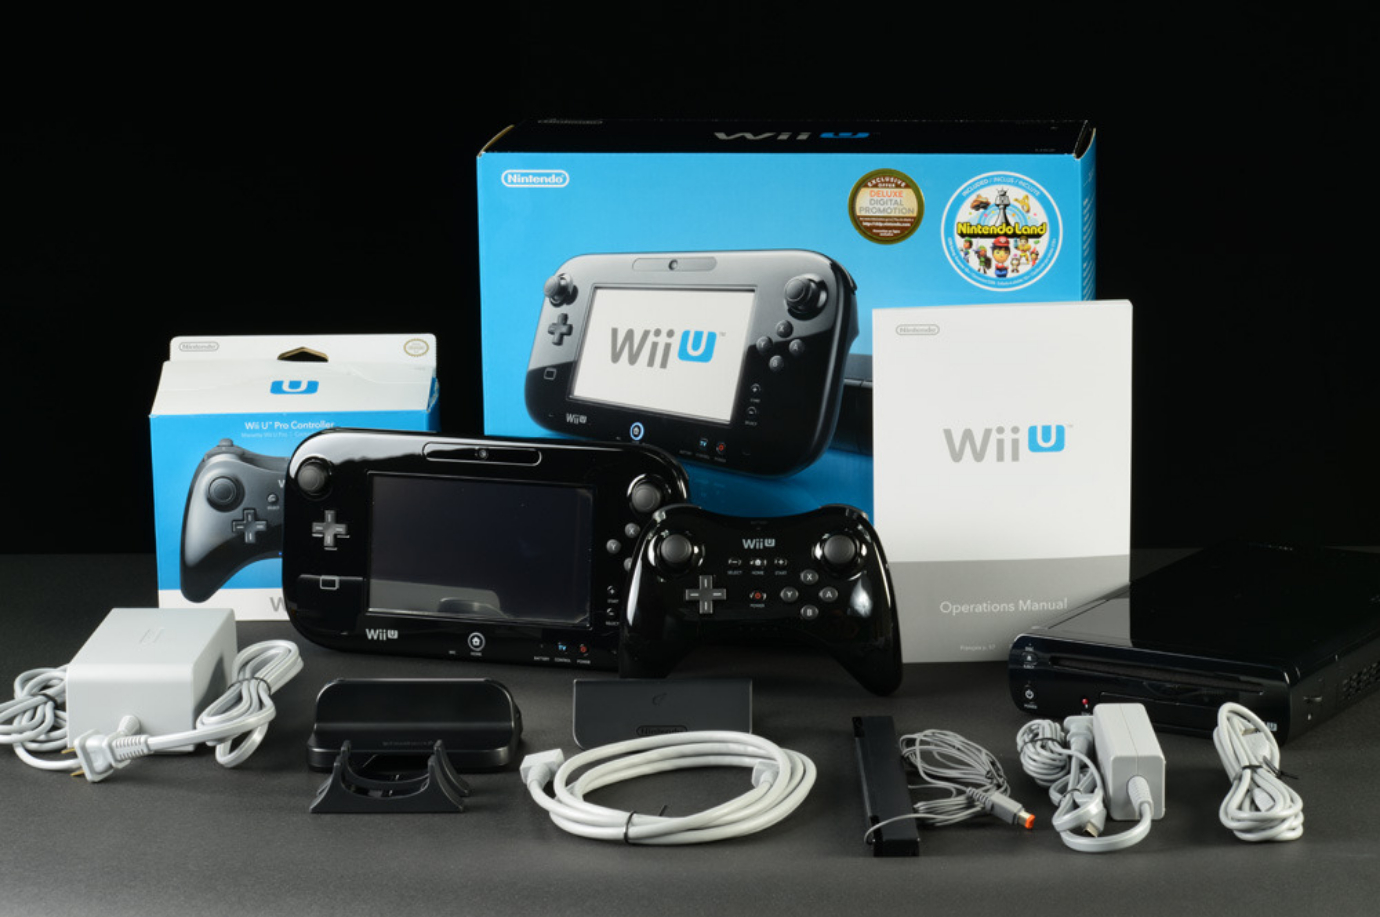 ... but the Wii U has frequently baffled both casual and hardcore alike.